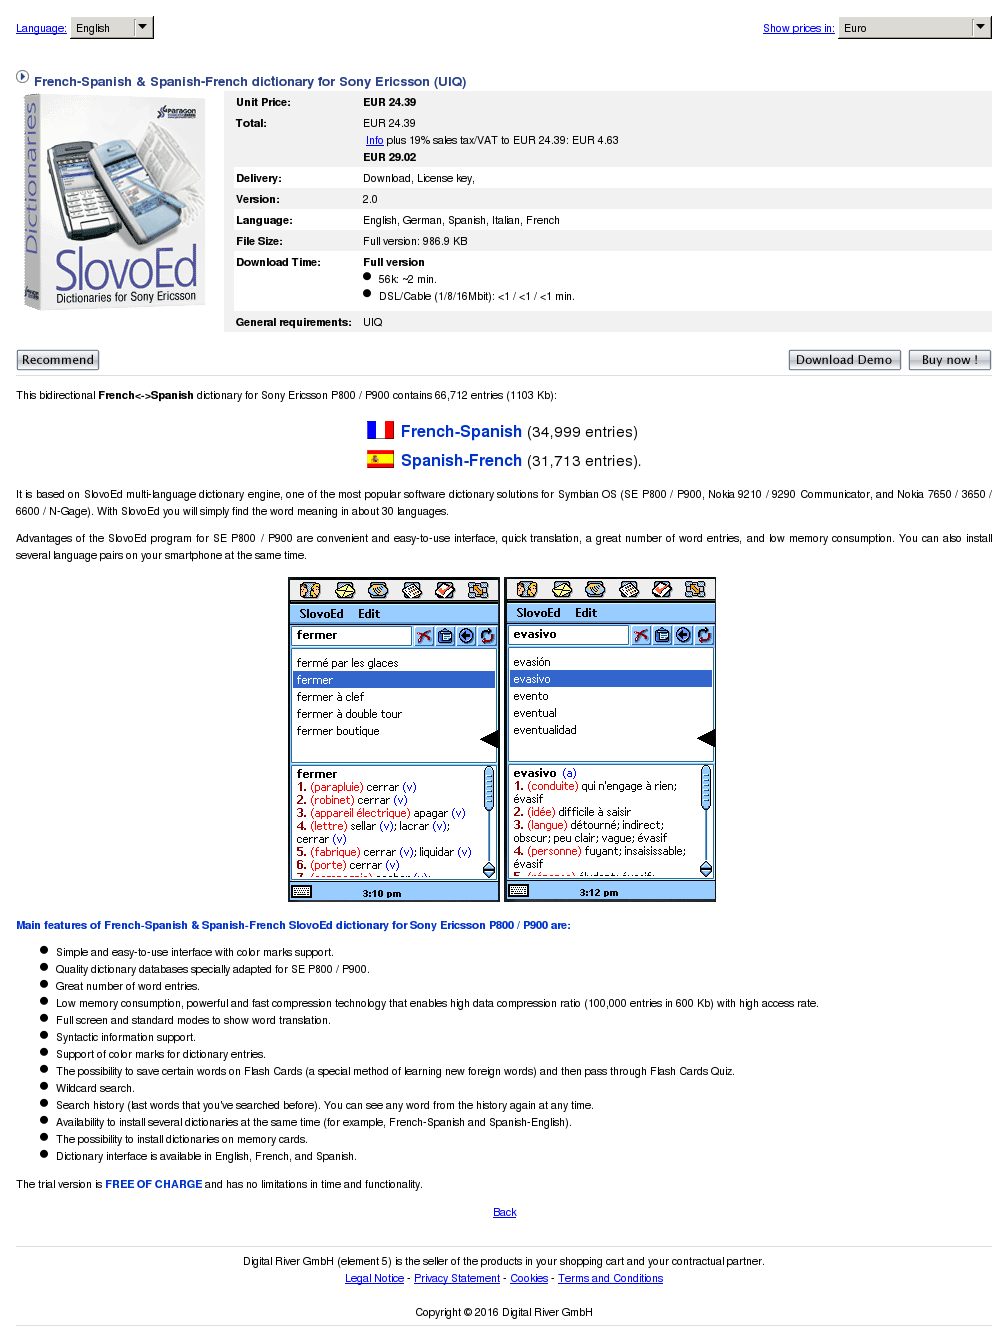 French Spanish Dictionary Sony Ericsson Uiq Review